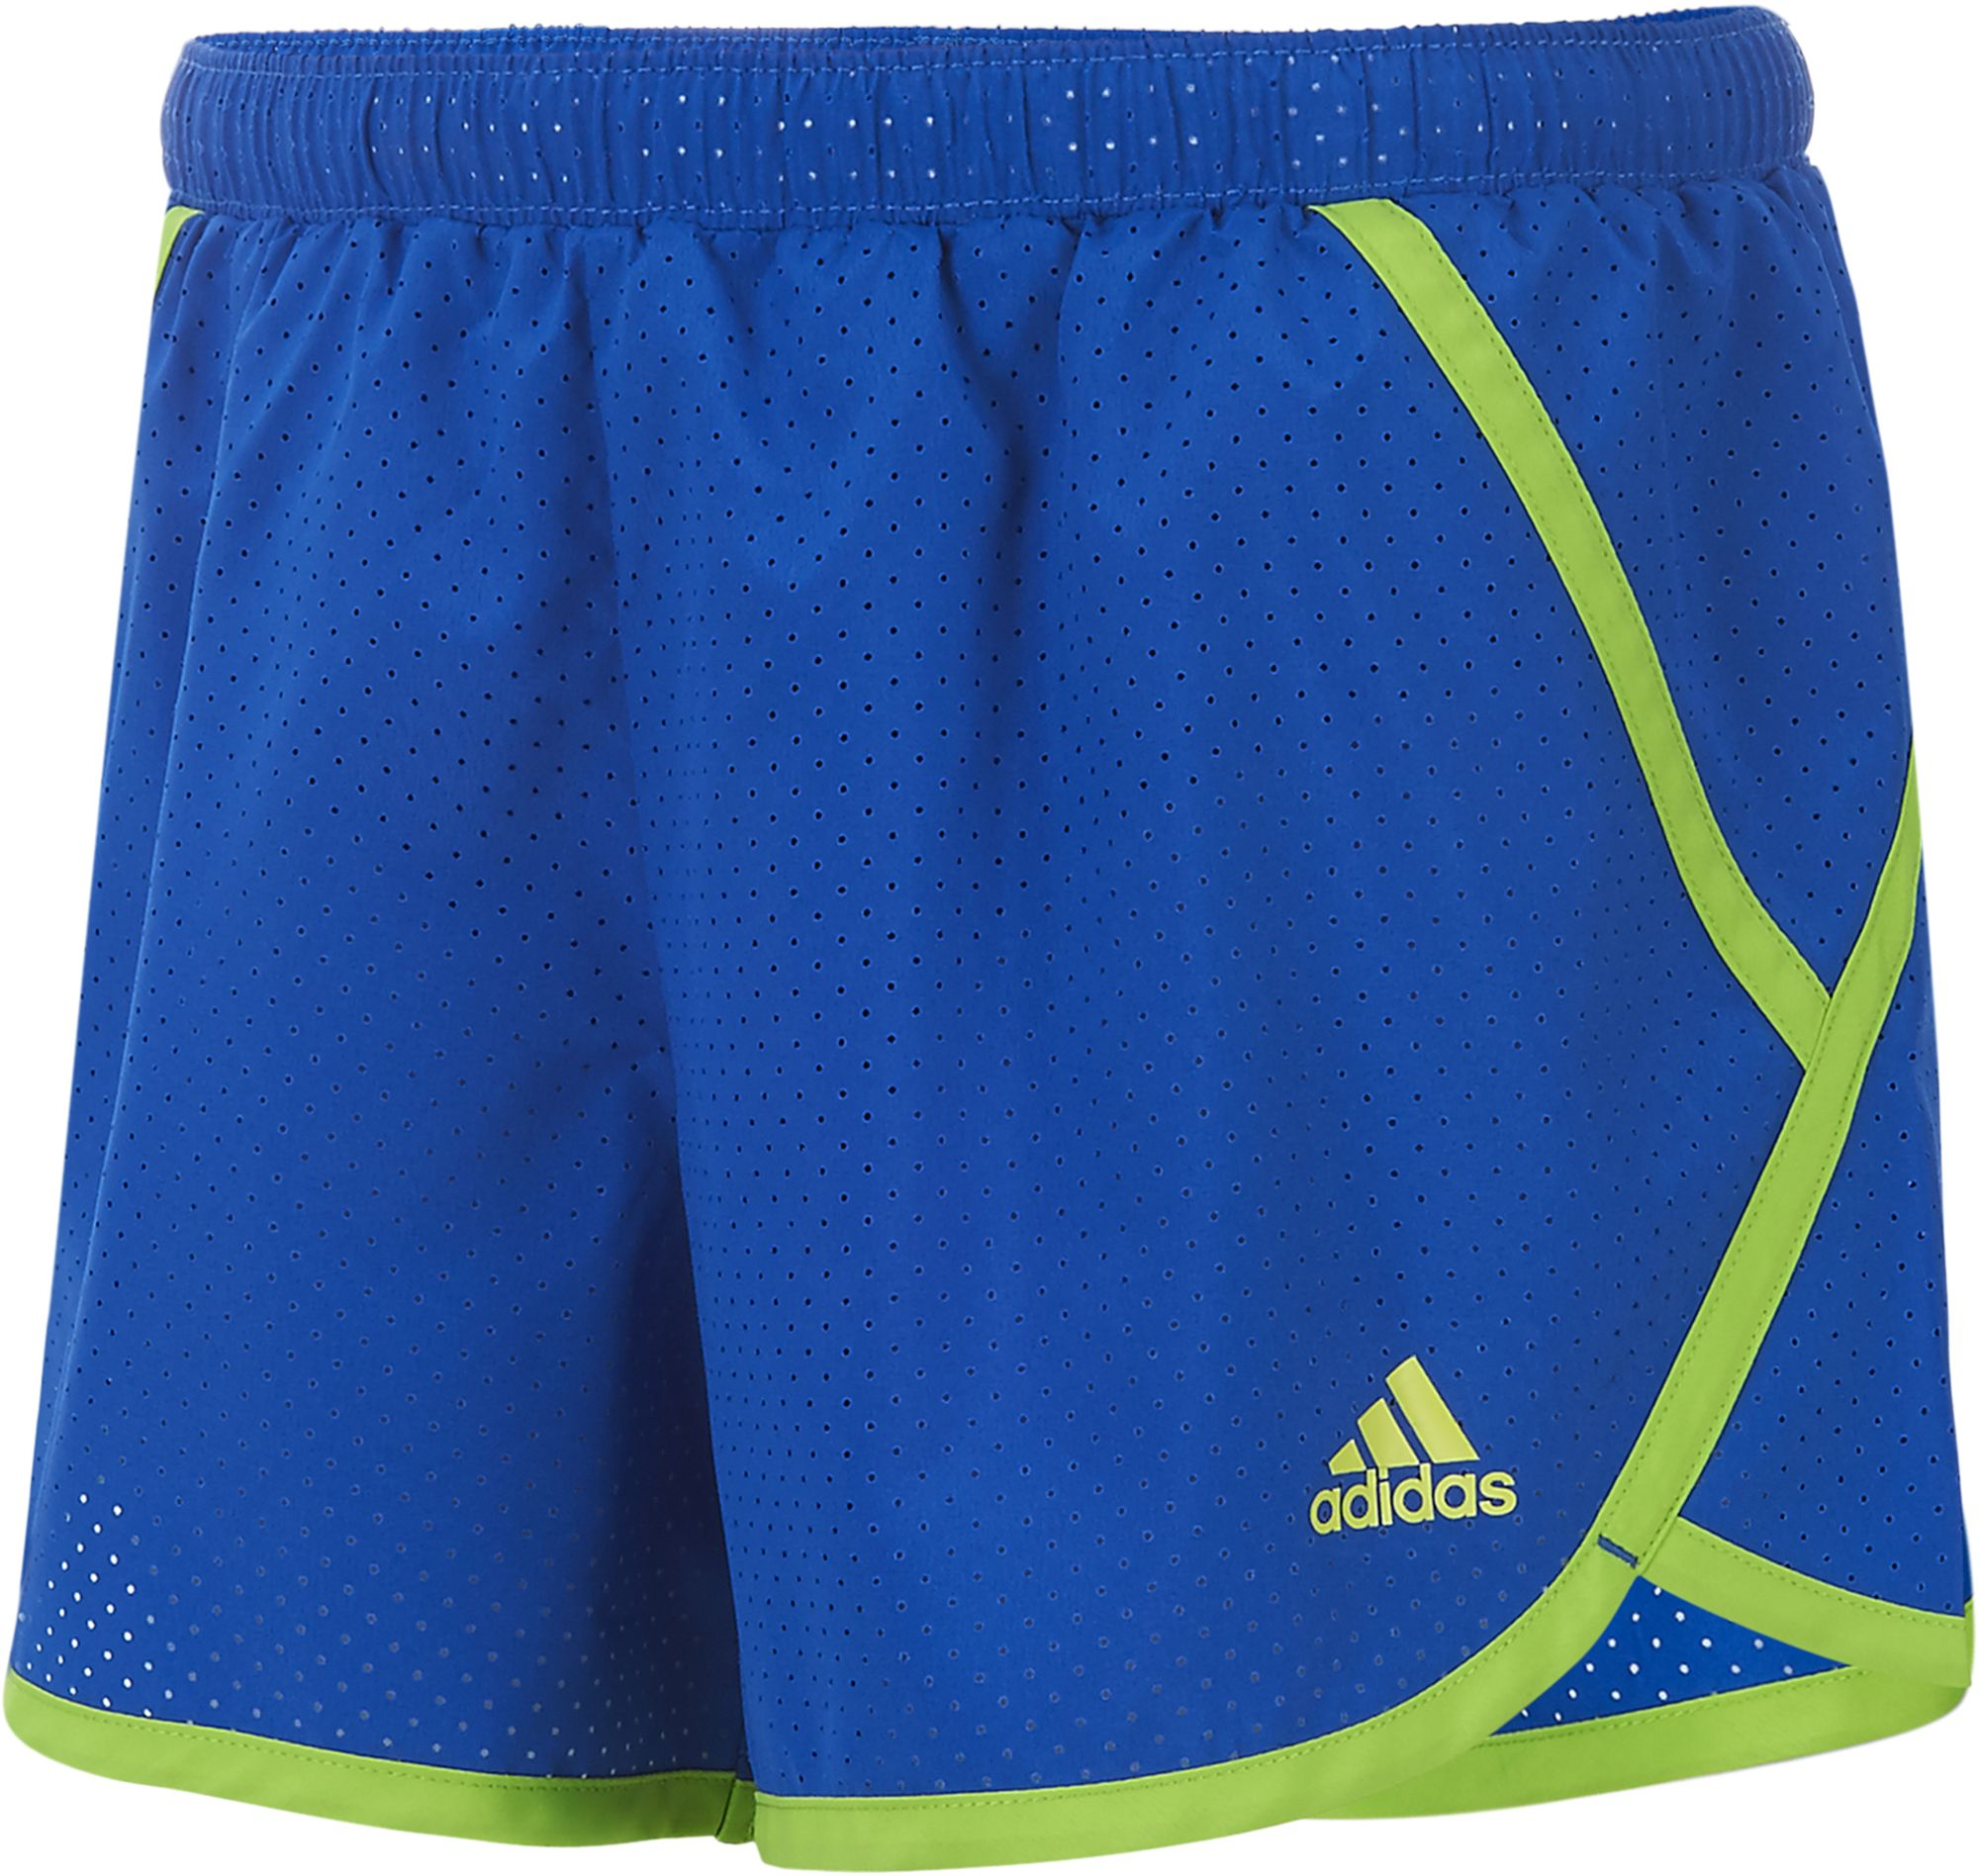 adidas Girls Finish Line Woven Shorts DICKS Sporting Goods